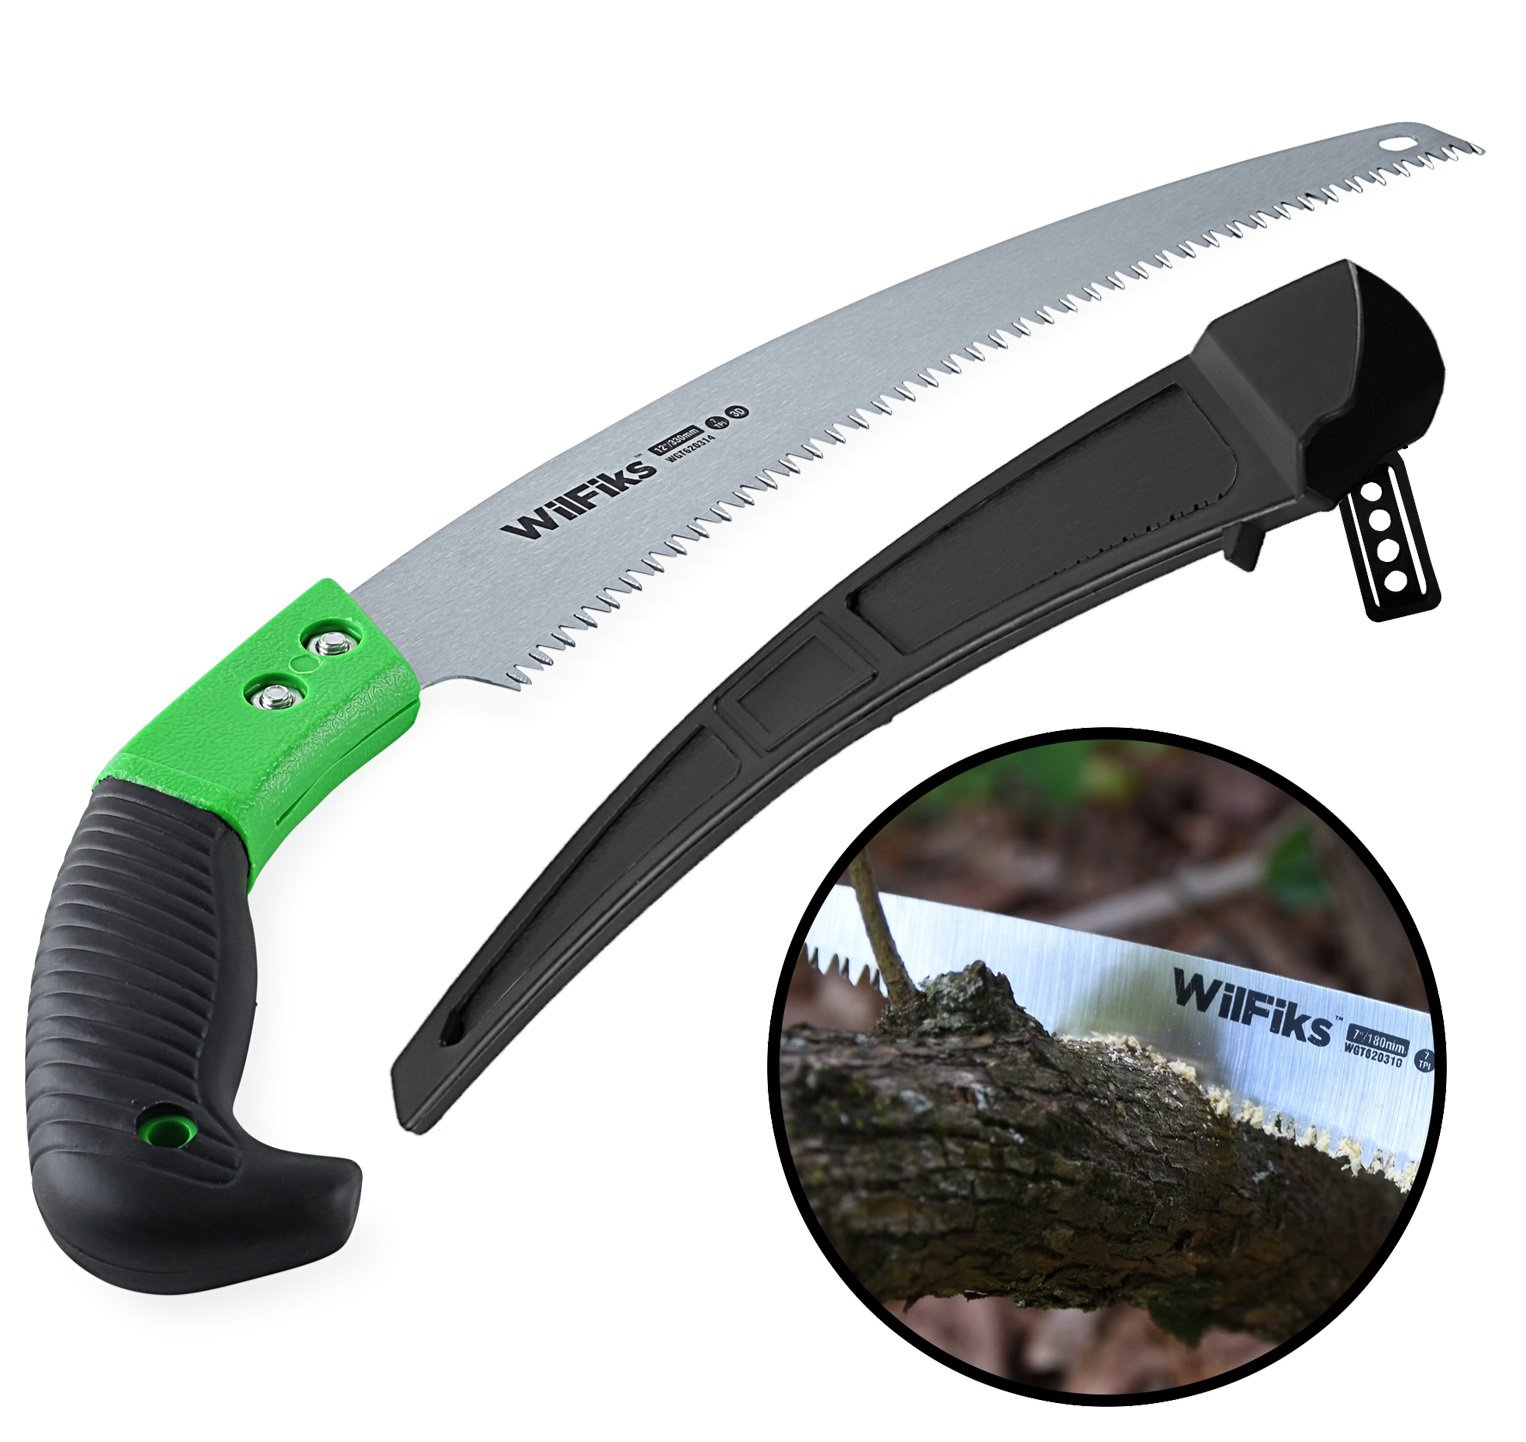 WilFiks Razor Sharp 13'' Heavy Duty Curved Hand Saw, Perfect For Sawing, Trimming, Gardening, Pruning & Cutting Wood, Drywall & More, Comfortable Ergonomic Non-Slip Handle, Includes A Protective Sheath